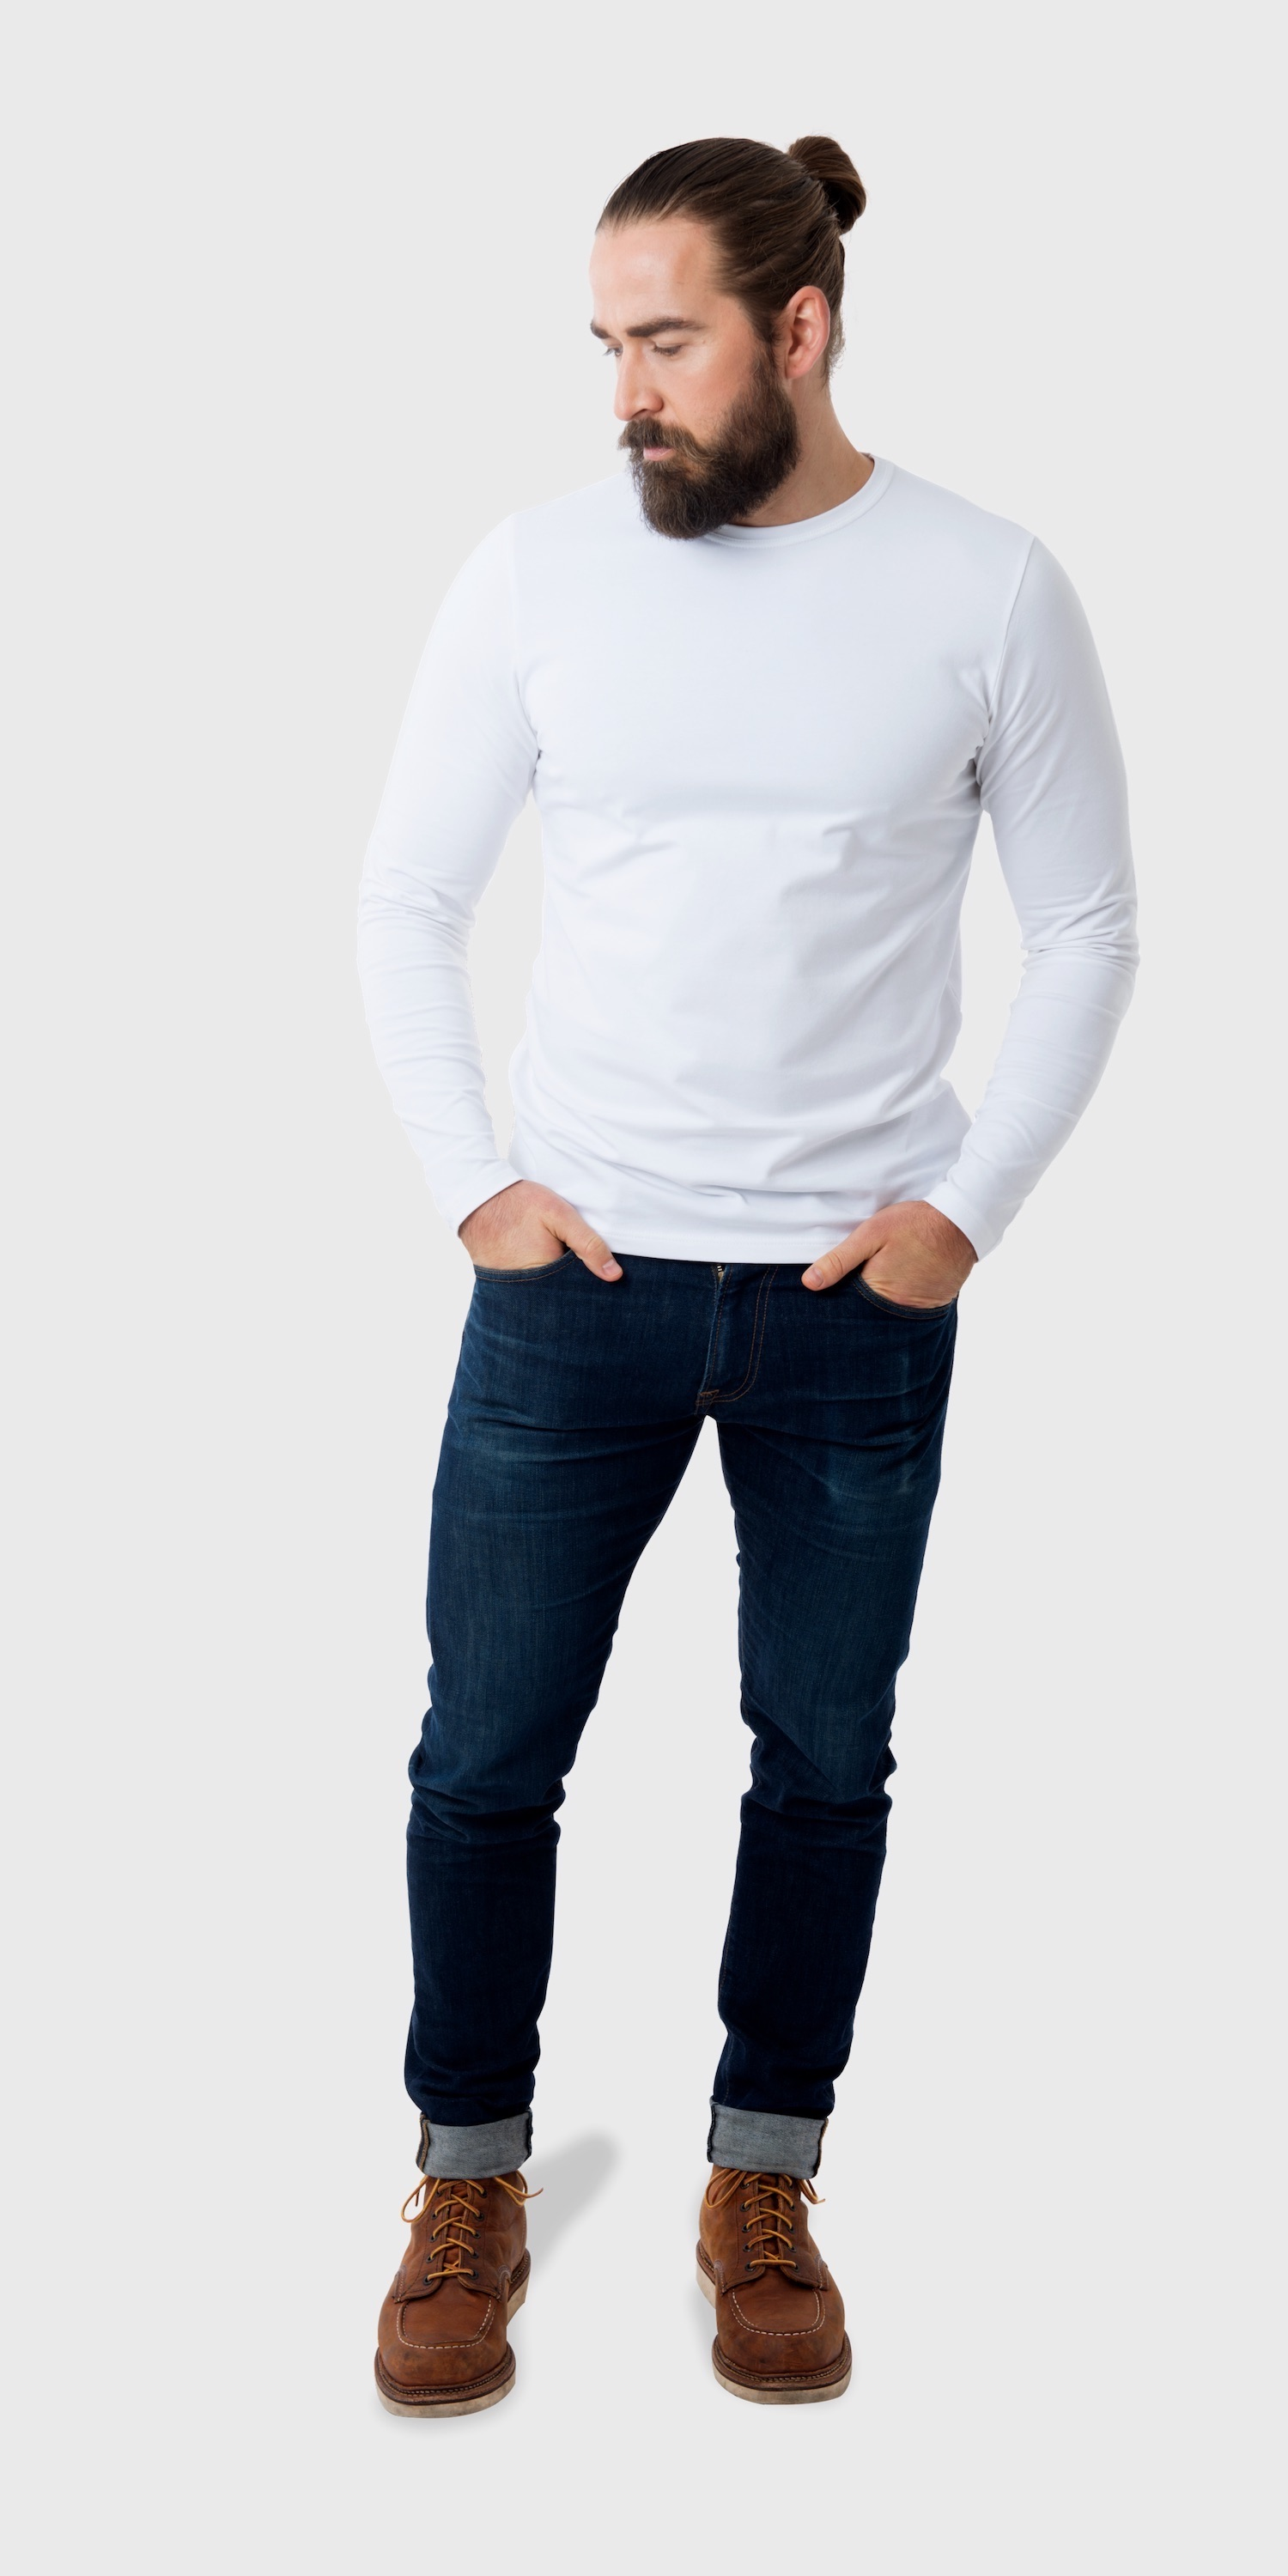 Men's long sleeve fitted white t-shirt